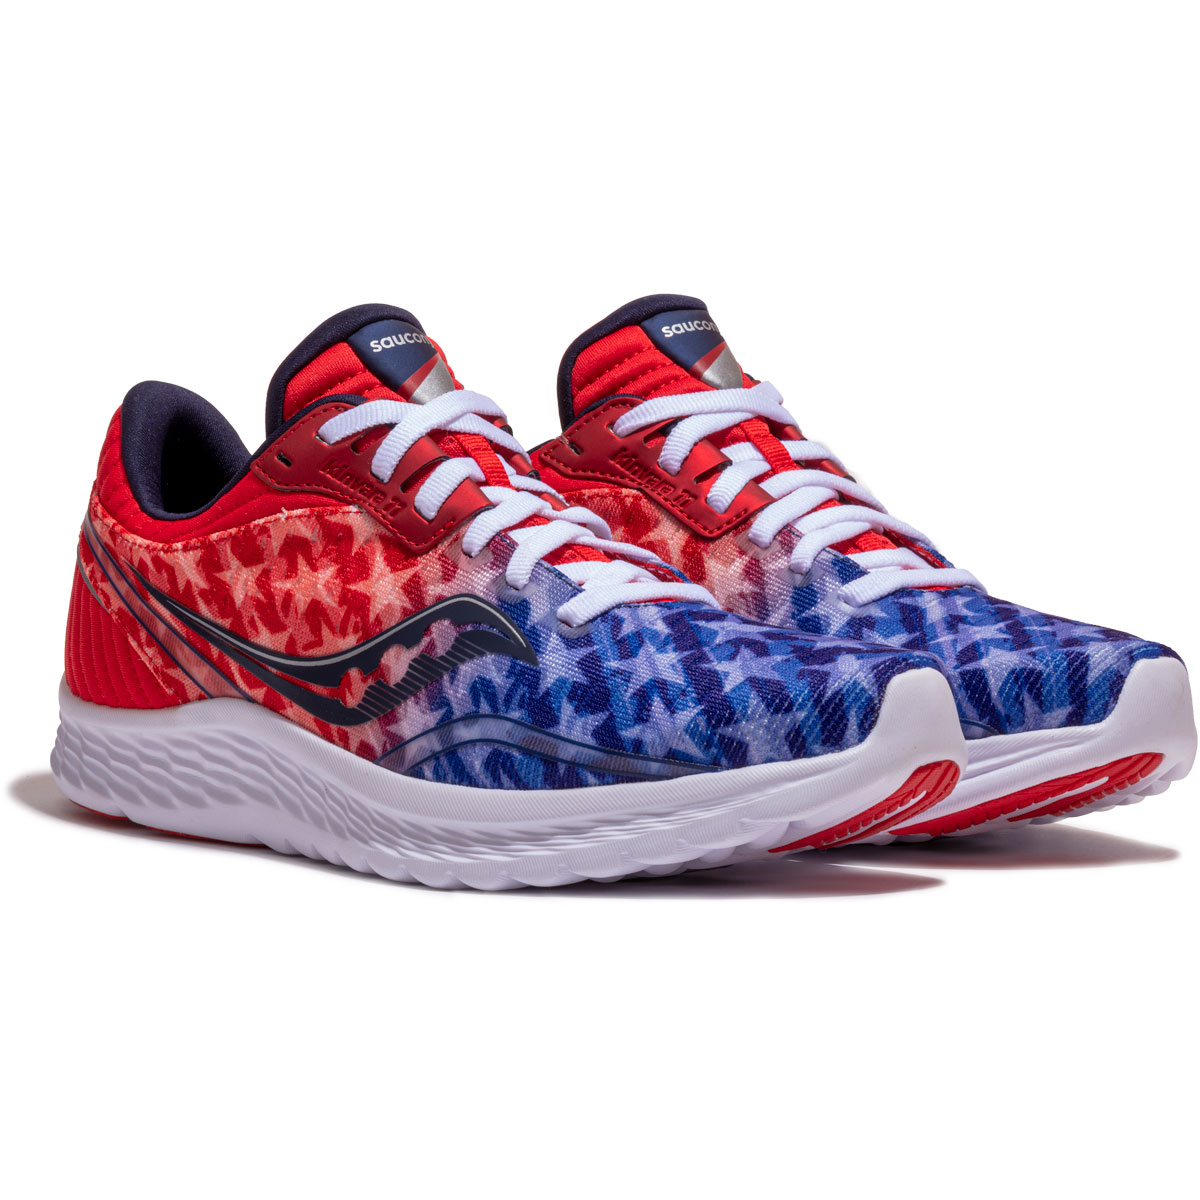 Women's Saucony Kinvara 11 Running Shoe - Color: Red/White/Blue - Size: 5 - Width: Regular, Red/White/Blue, large, image 5